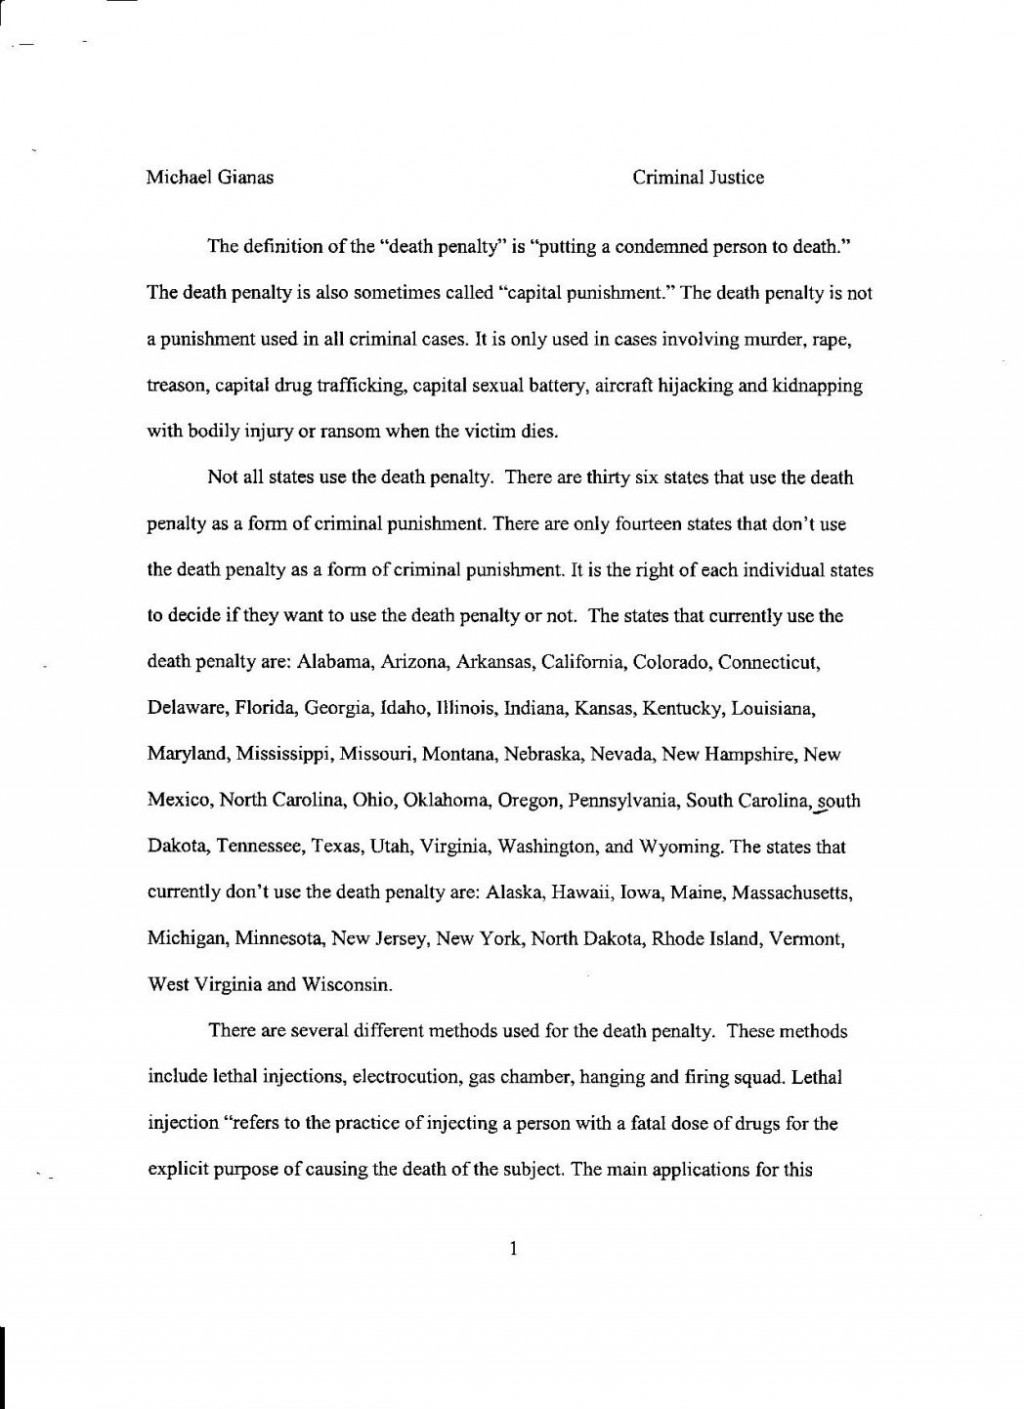 006 Death Penalty Essay Against Best Ideas About Paragraph Persuasive On Pro Why Should Abolished Con In The Philippines Anti 1048x1443 Awful Pros And Cons Argumentative Conclusion Large